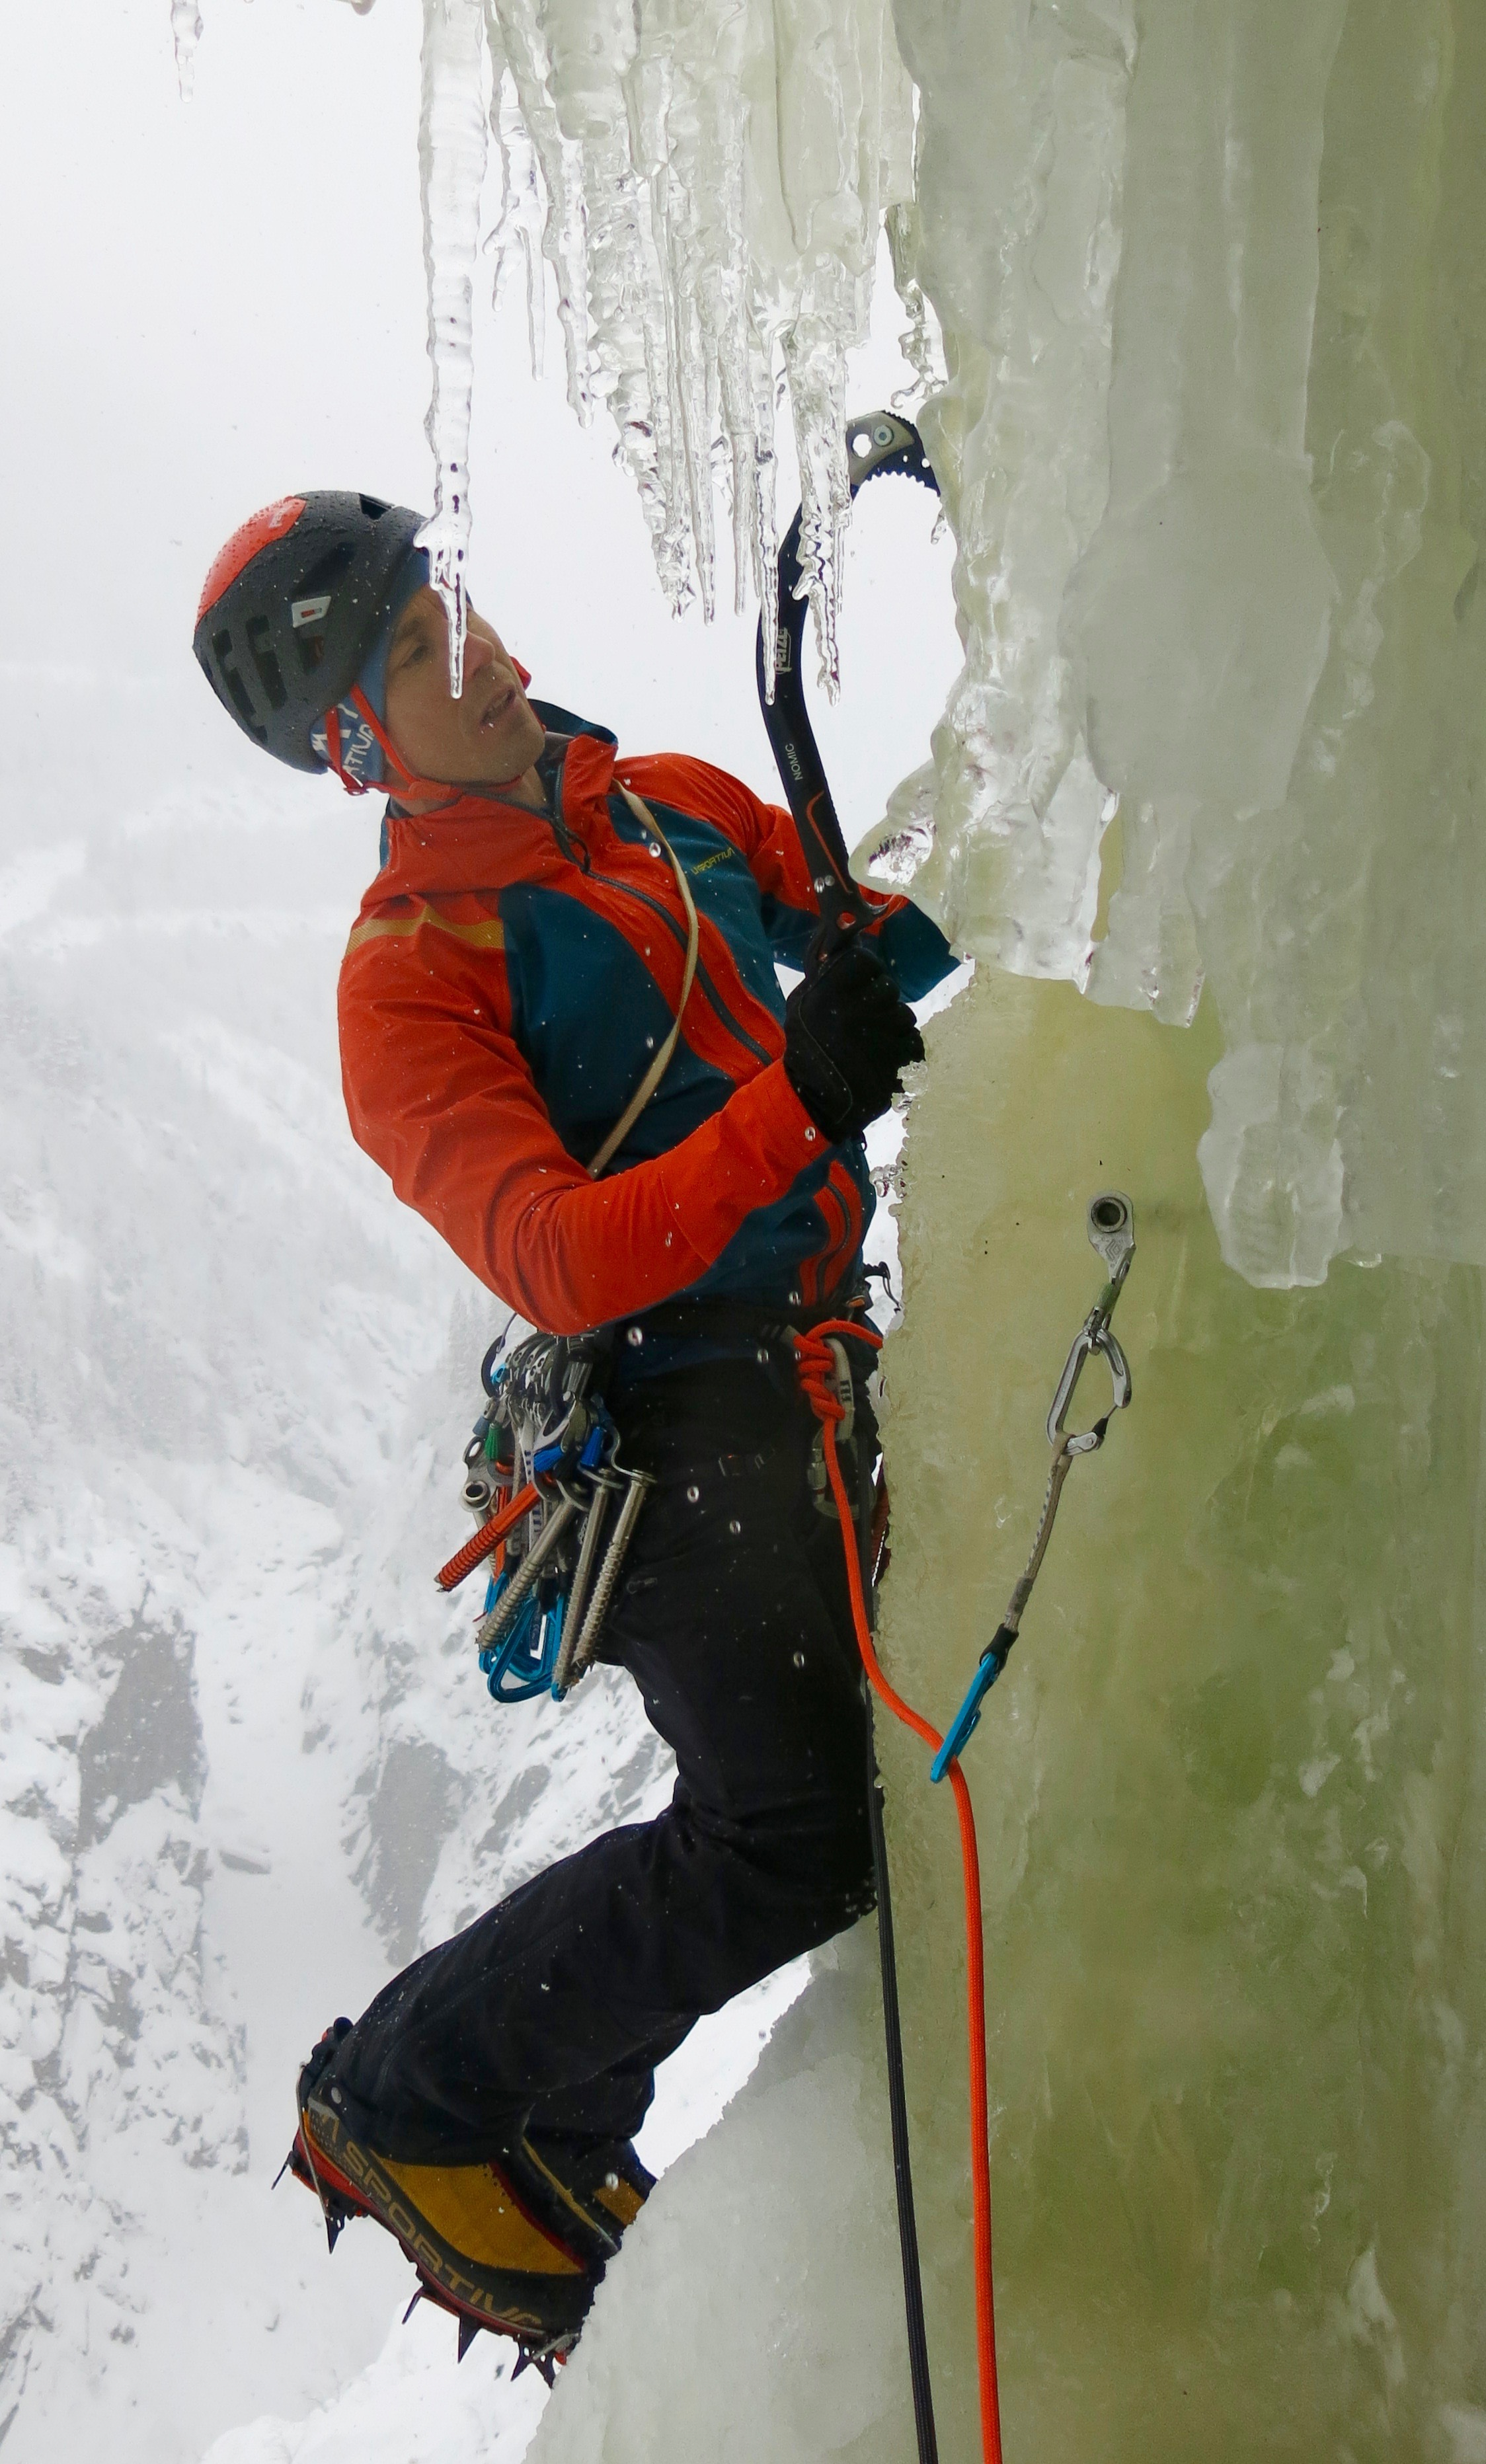 Climbing pitch 3 of Juvsoyla WI 6, in Rjukan, Norway, with Nomics. Photo: Gerard Smith